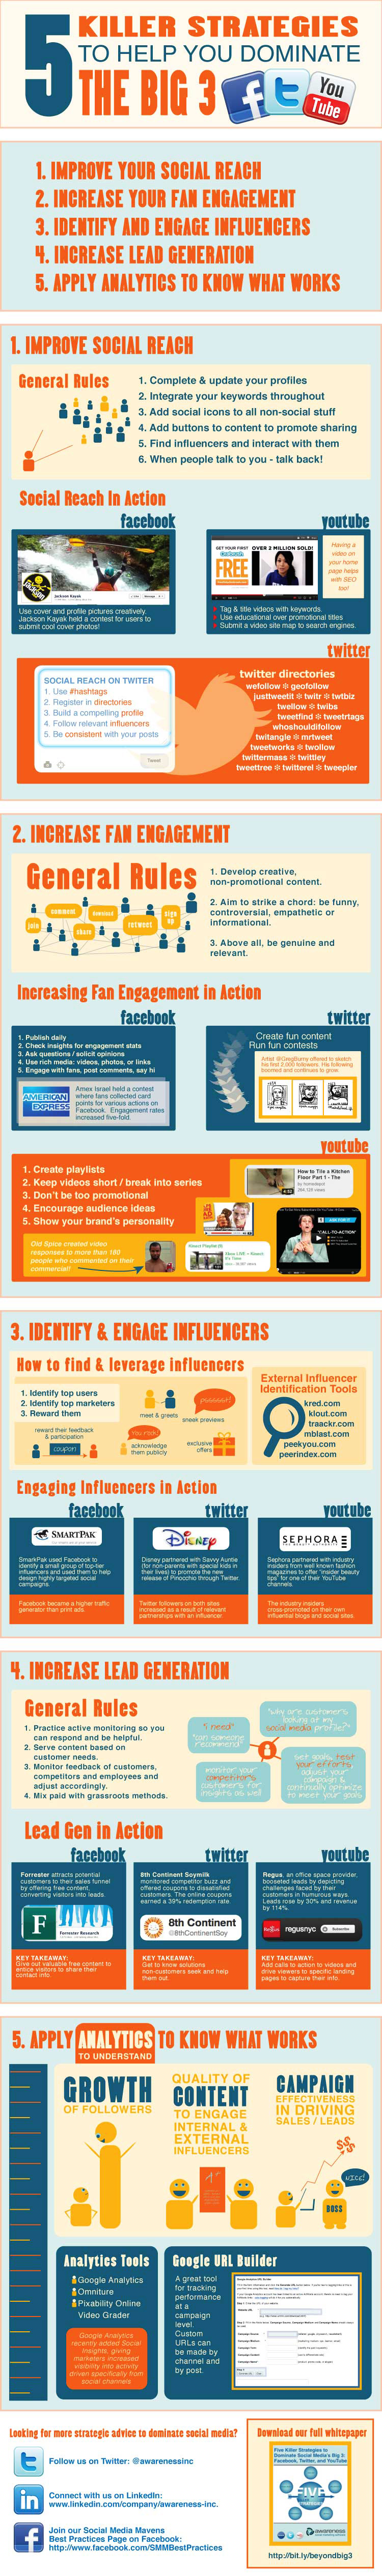 How to Dominate Facebook Twitter YouTube Infographic